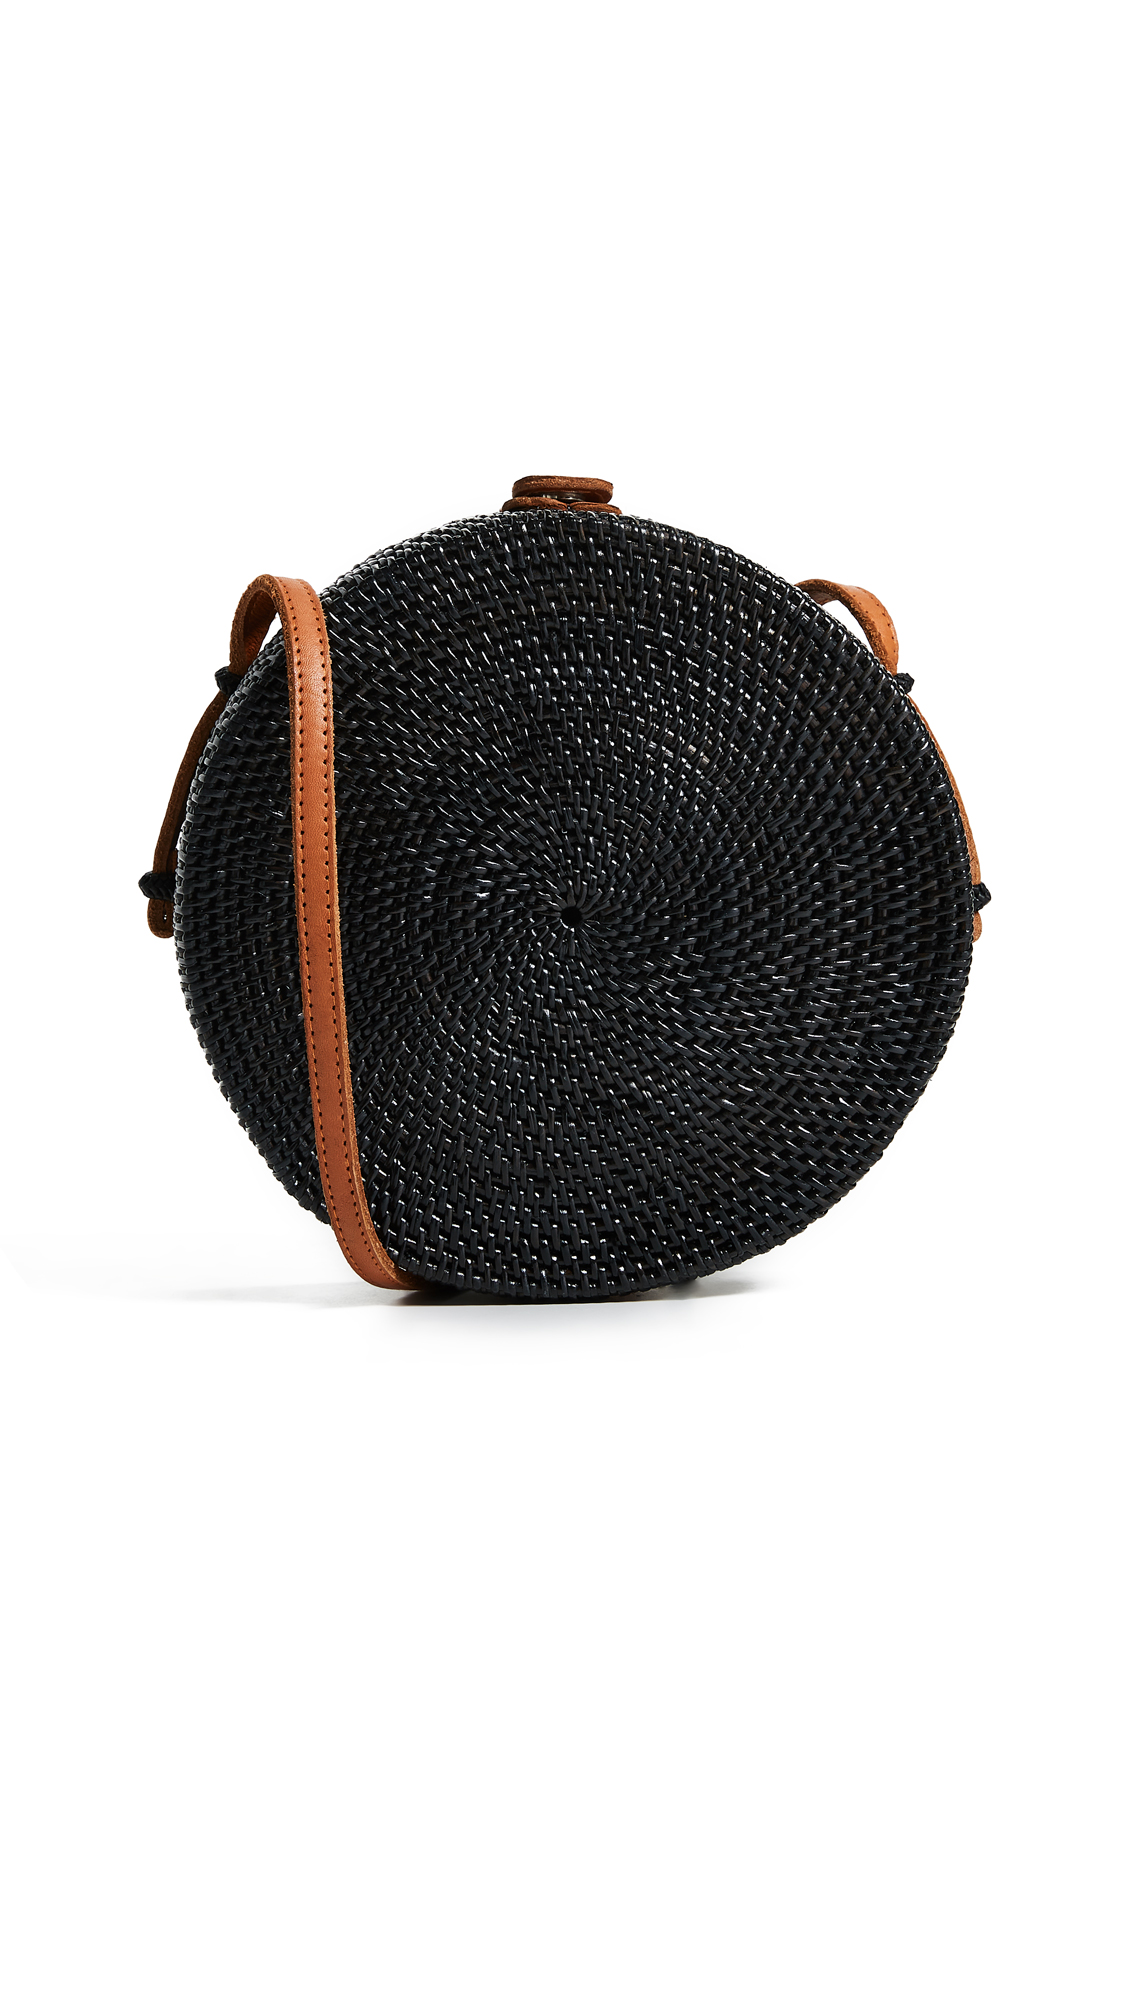 FAITHFULL THE BRAND Jana Round Cross Body Bag